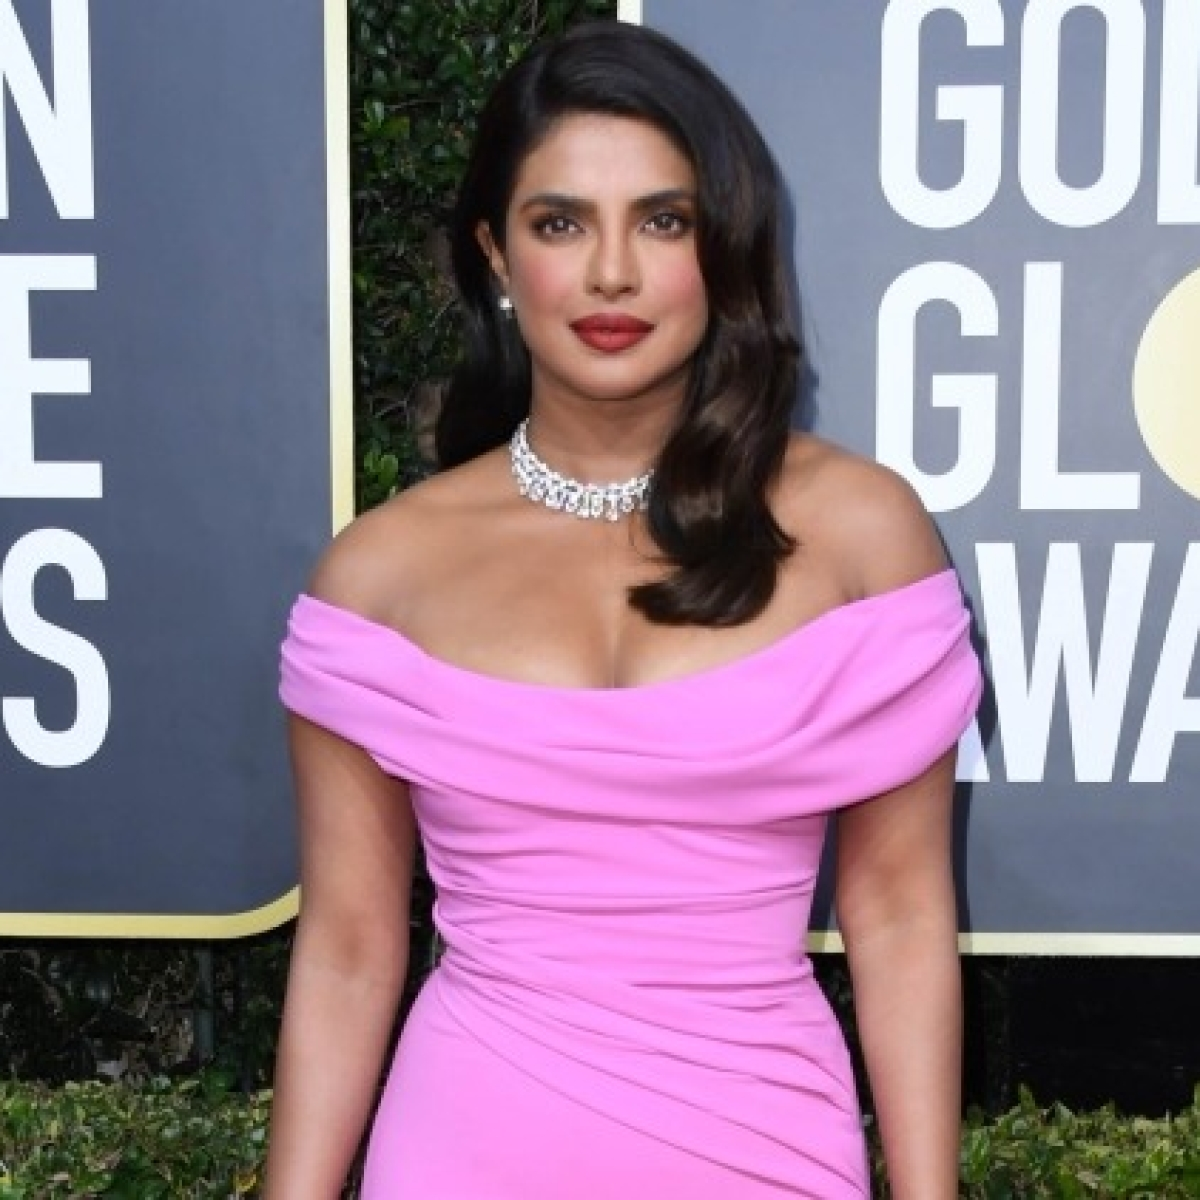 Priyanka Chopra pledges USD 100,000 to women heroes for their 'selfless' work amid coronavirus crisis